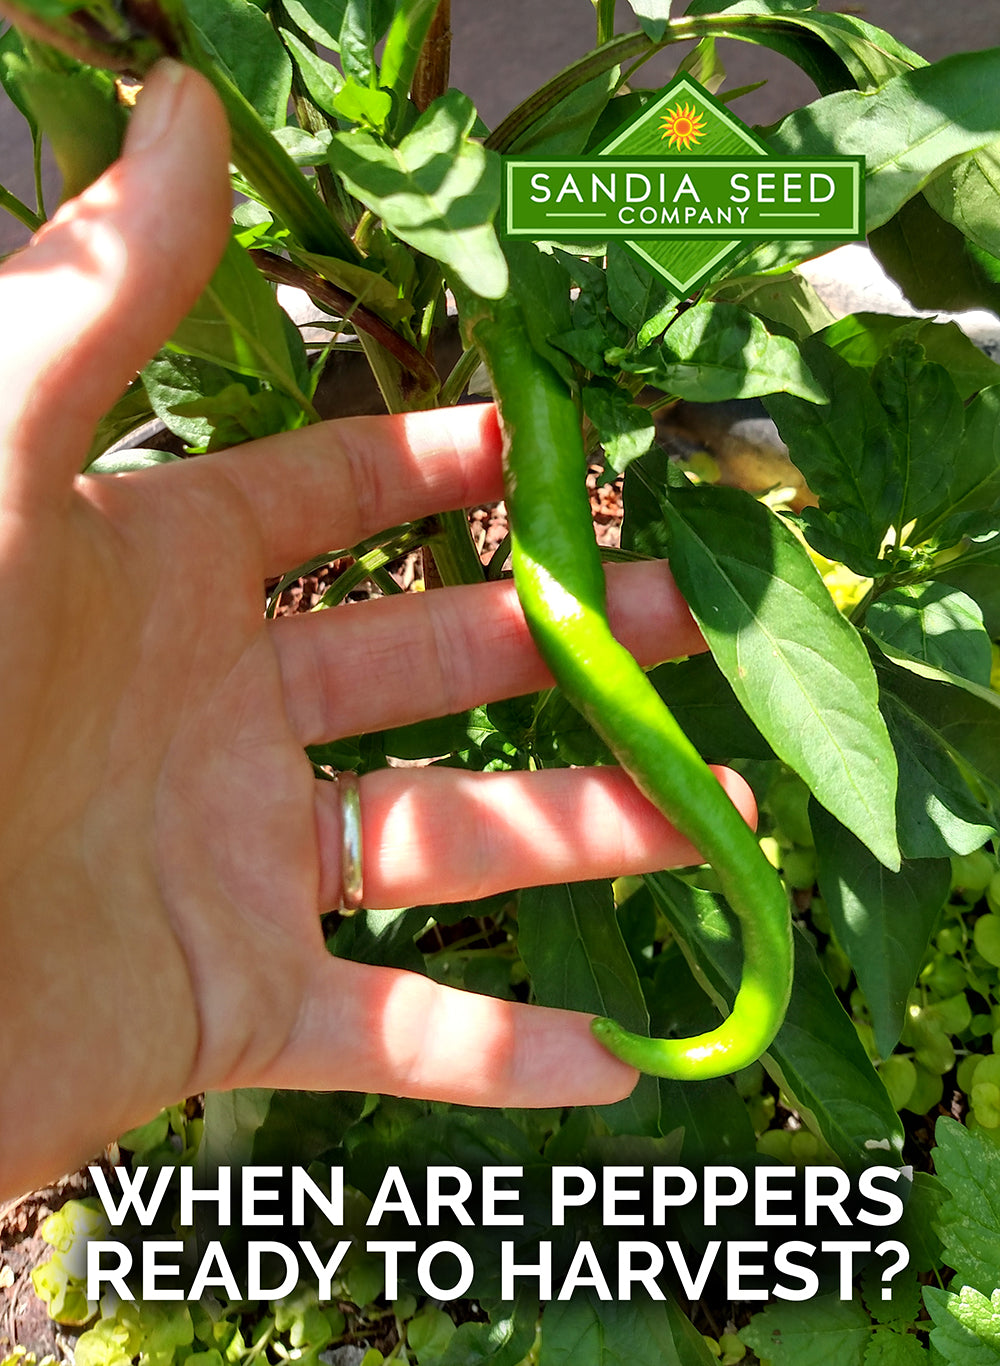 When are peppers ready to harvest?